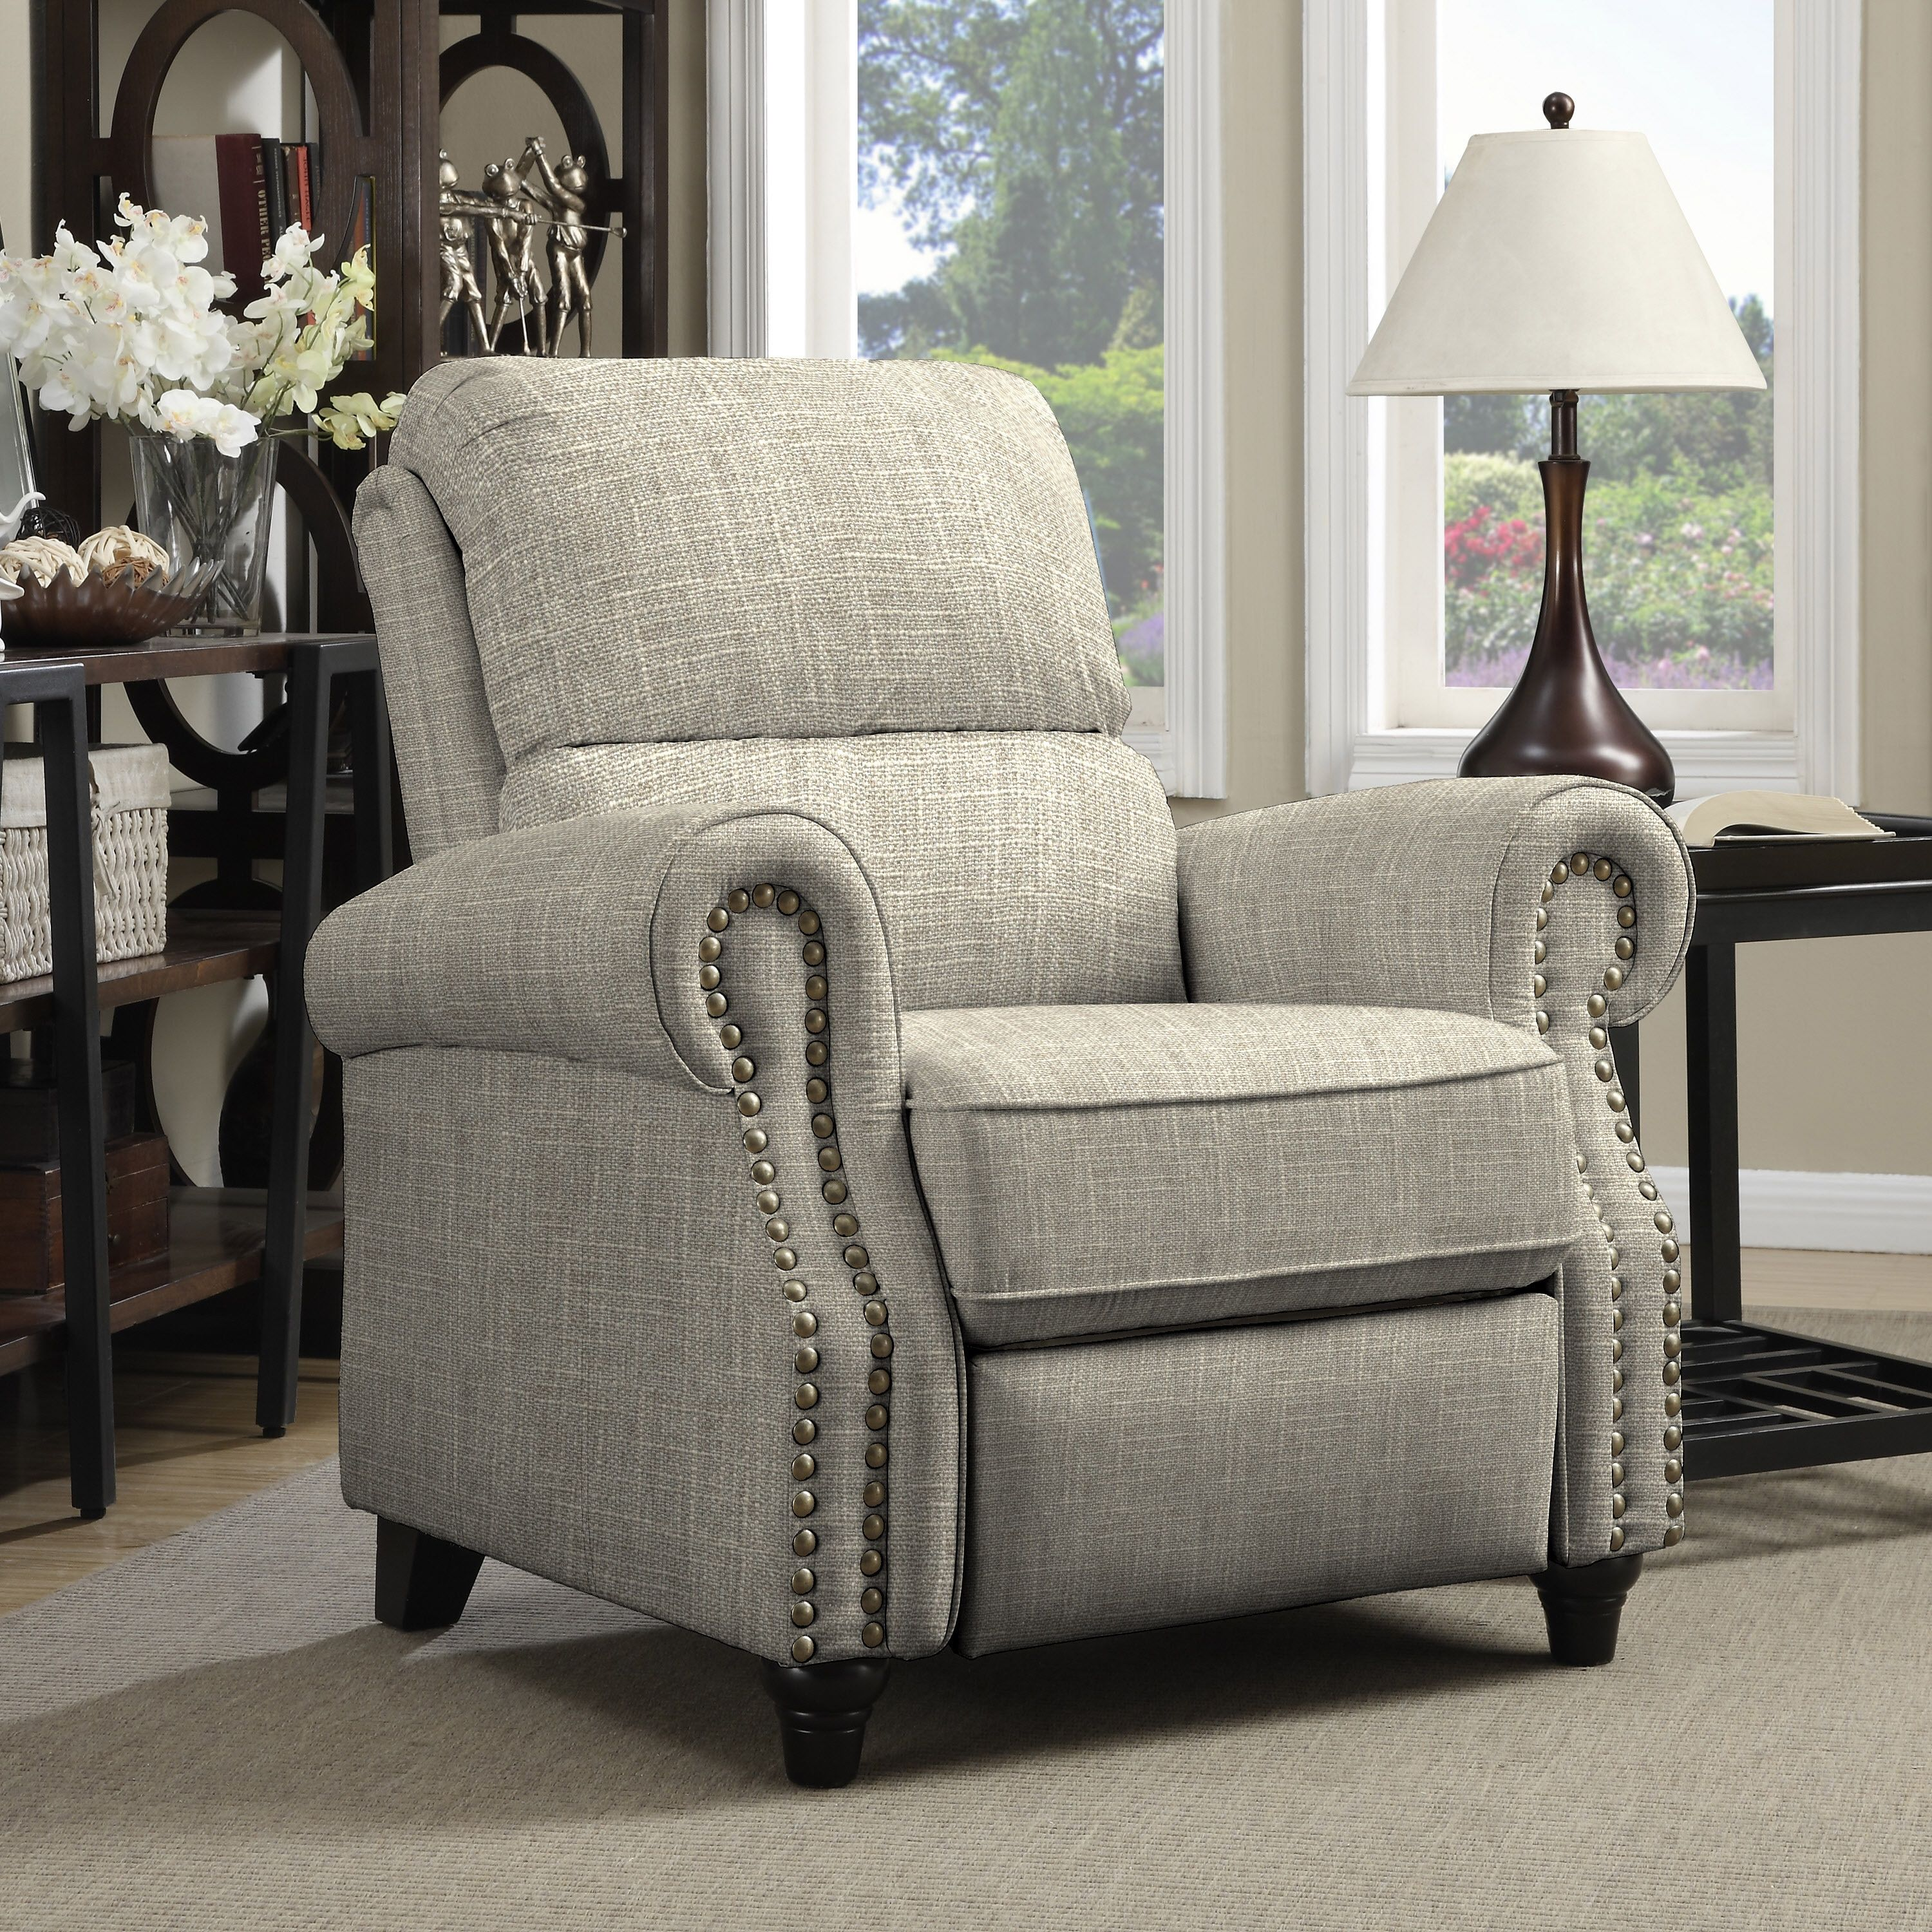 Overstuffed Living Room Chairs: Living Room Chairs: Create An Inviting Atmosphere With New